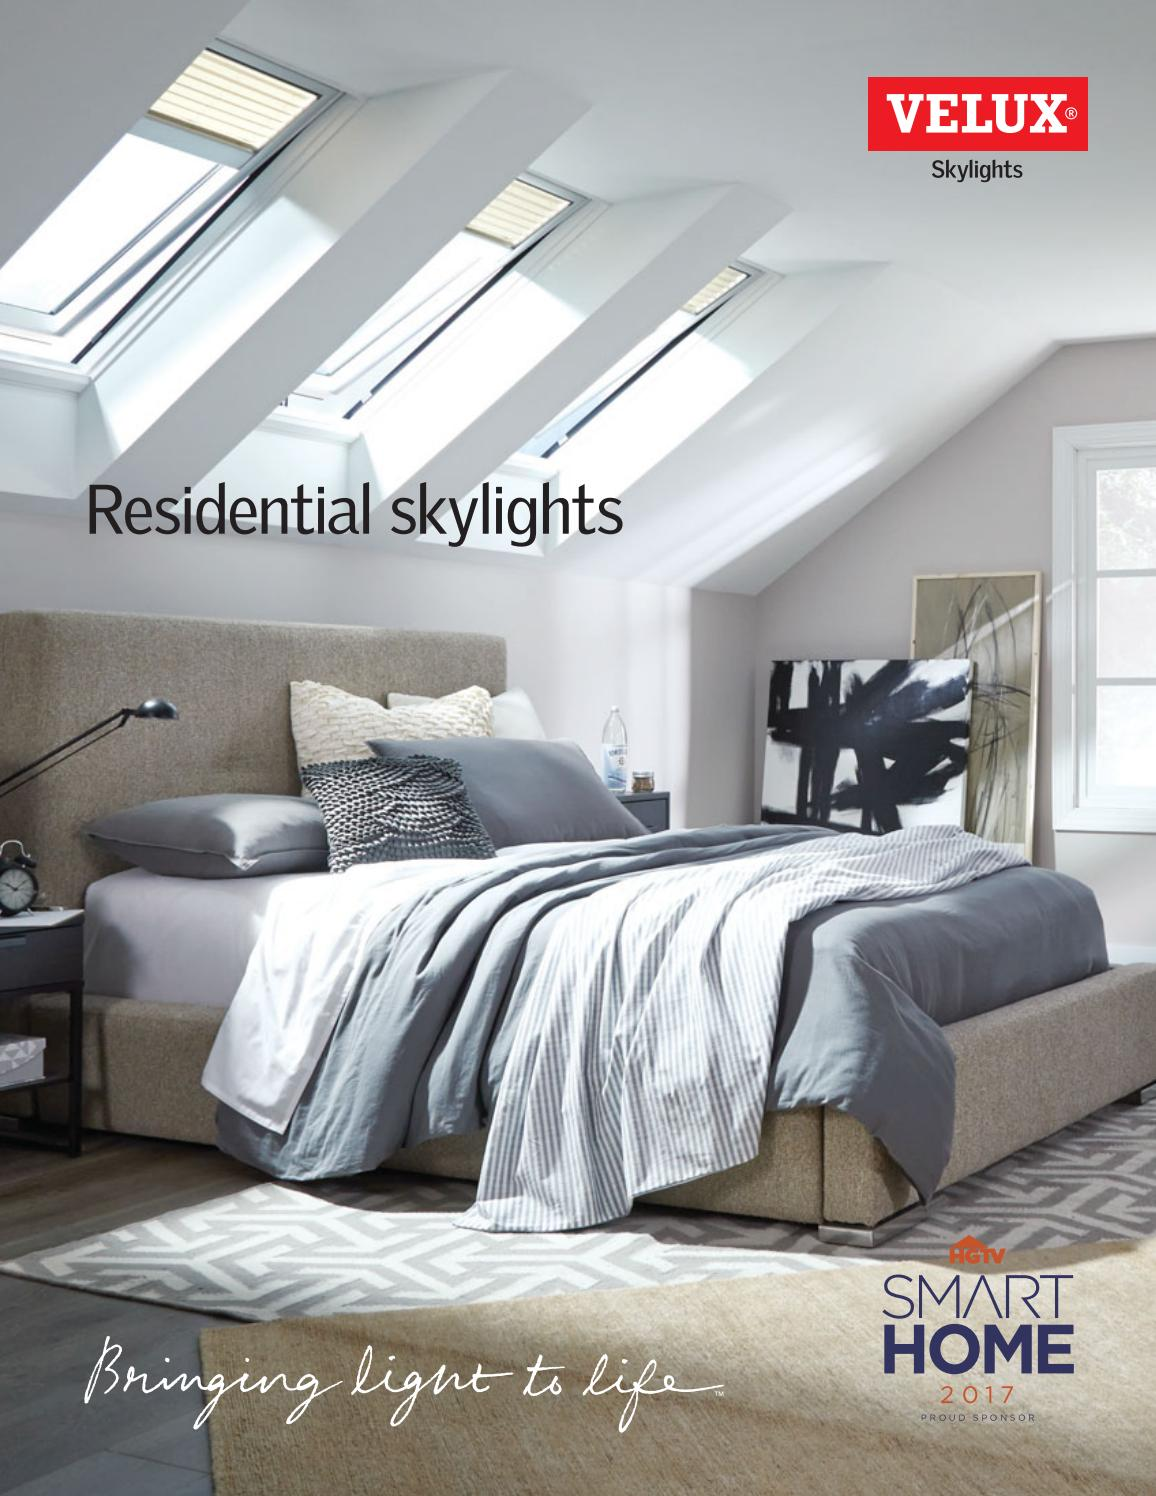 Velux skylights by horner millwork issuu for How to clean velux skylights